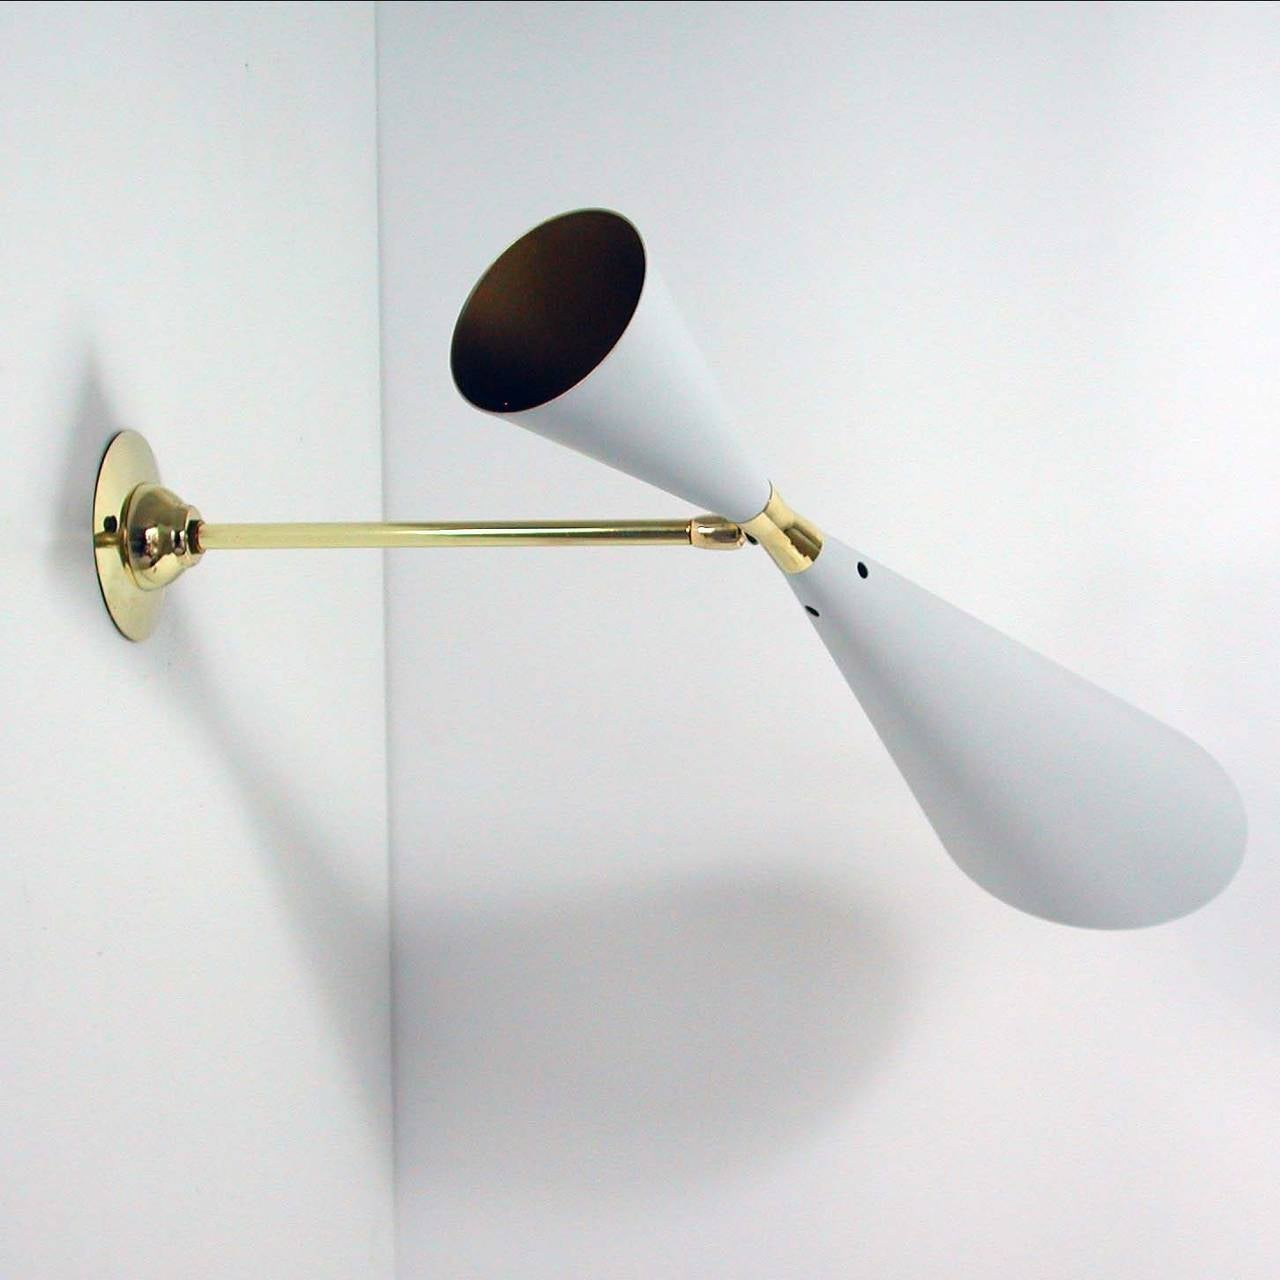 Lacquered Mid-Century French 1950s Diabolo Wall Light Sconce from the Guariche Lunel Era For Sale